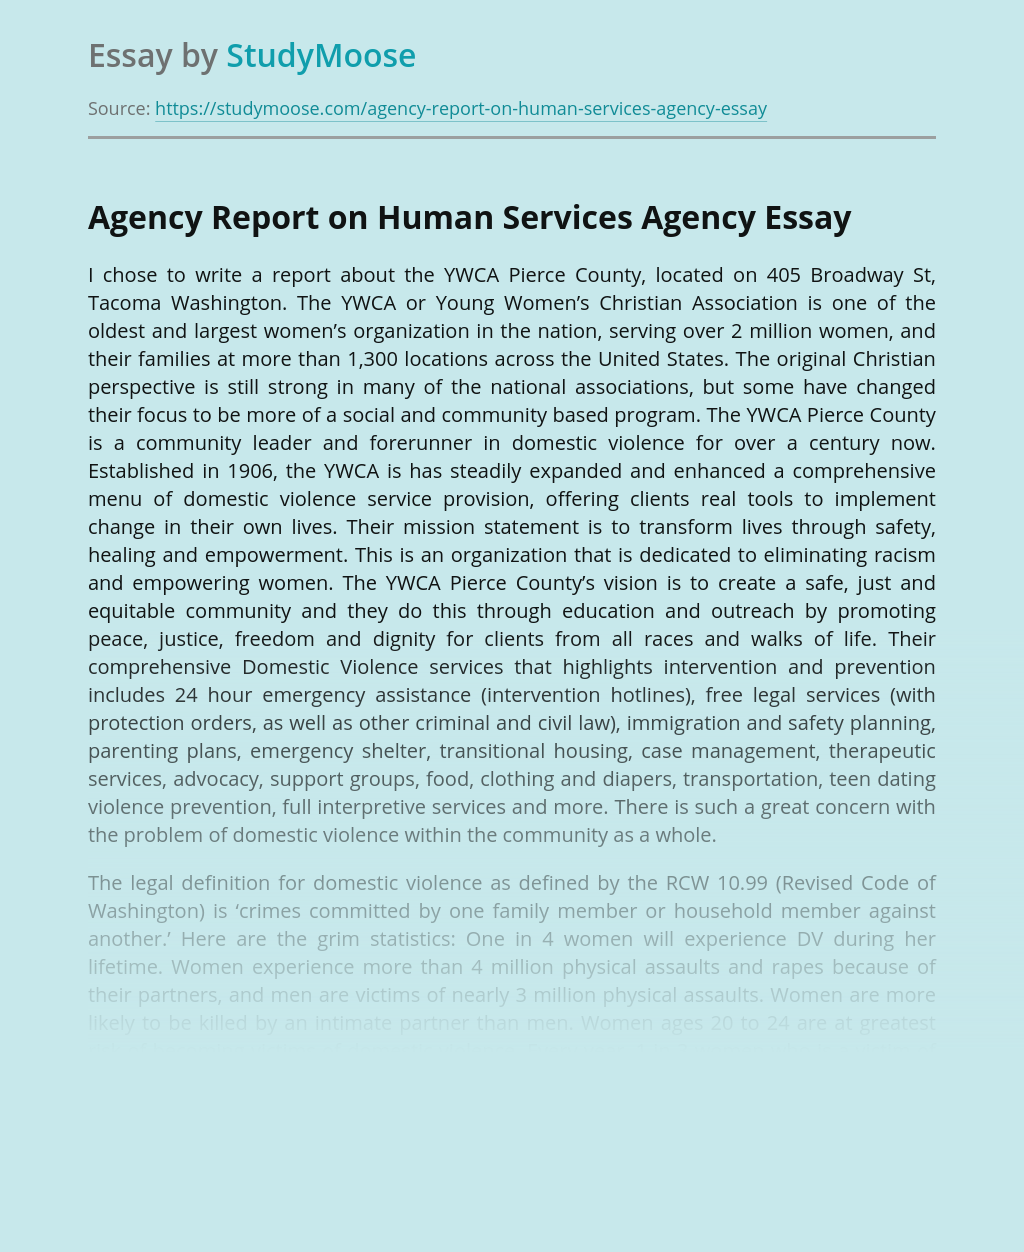 Agency Report on Human Services Agency